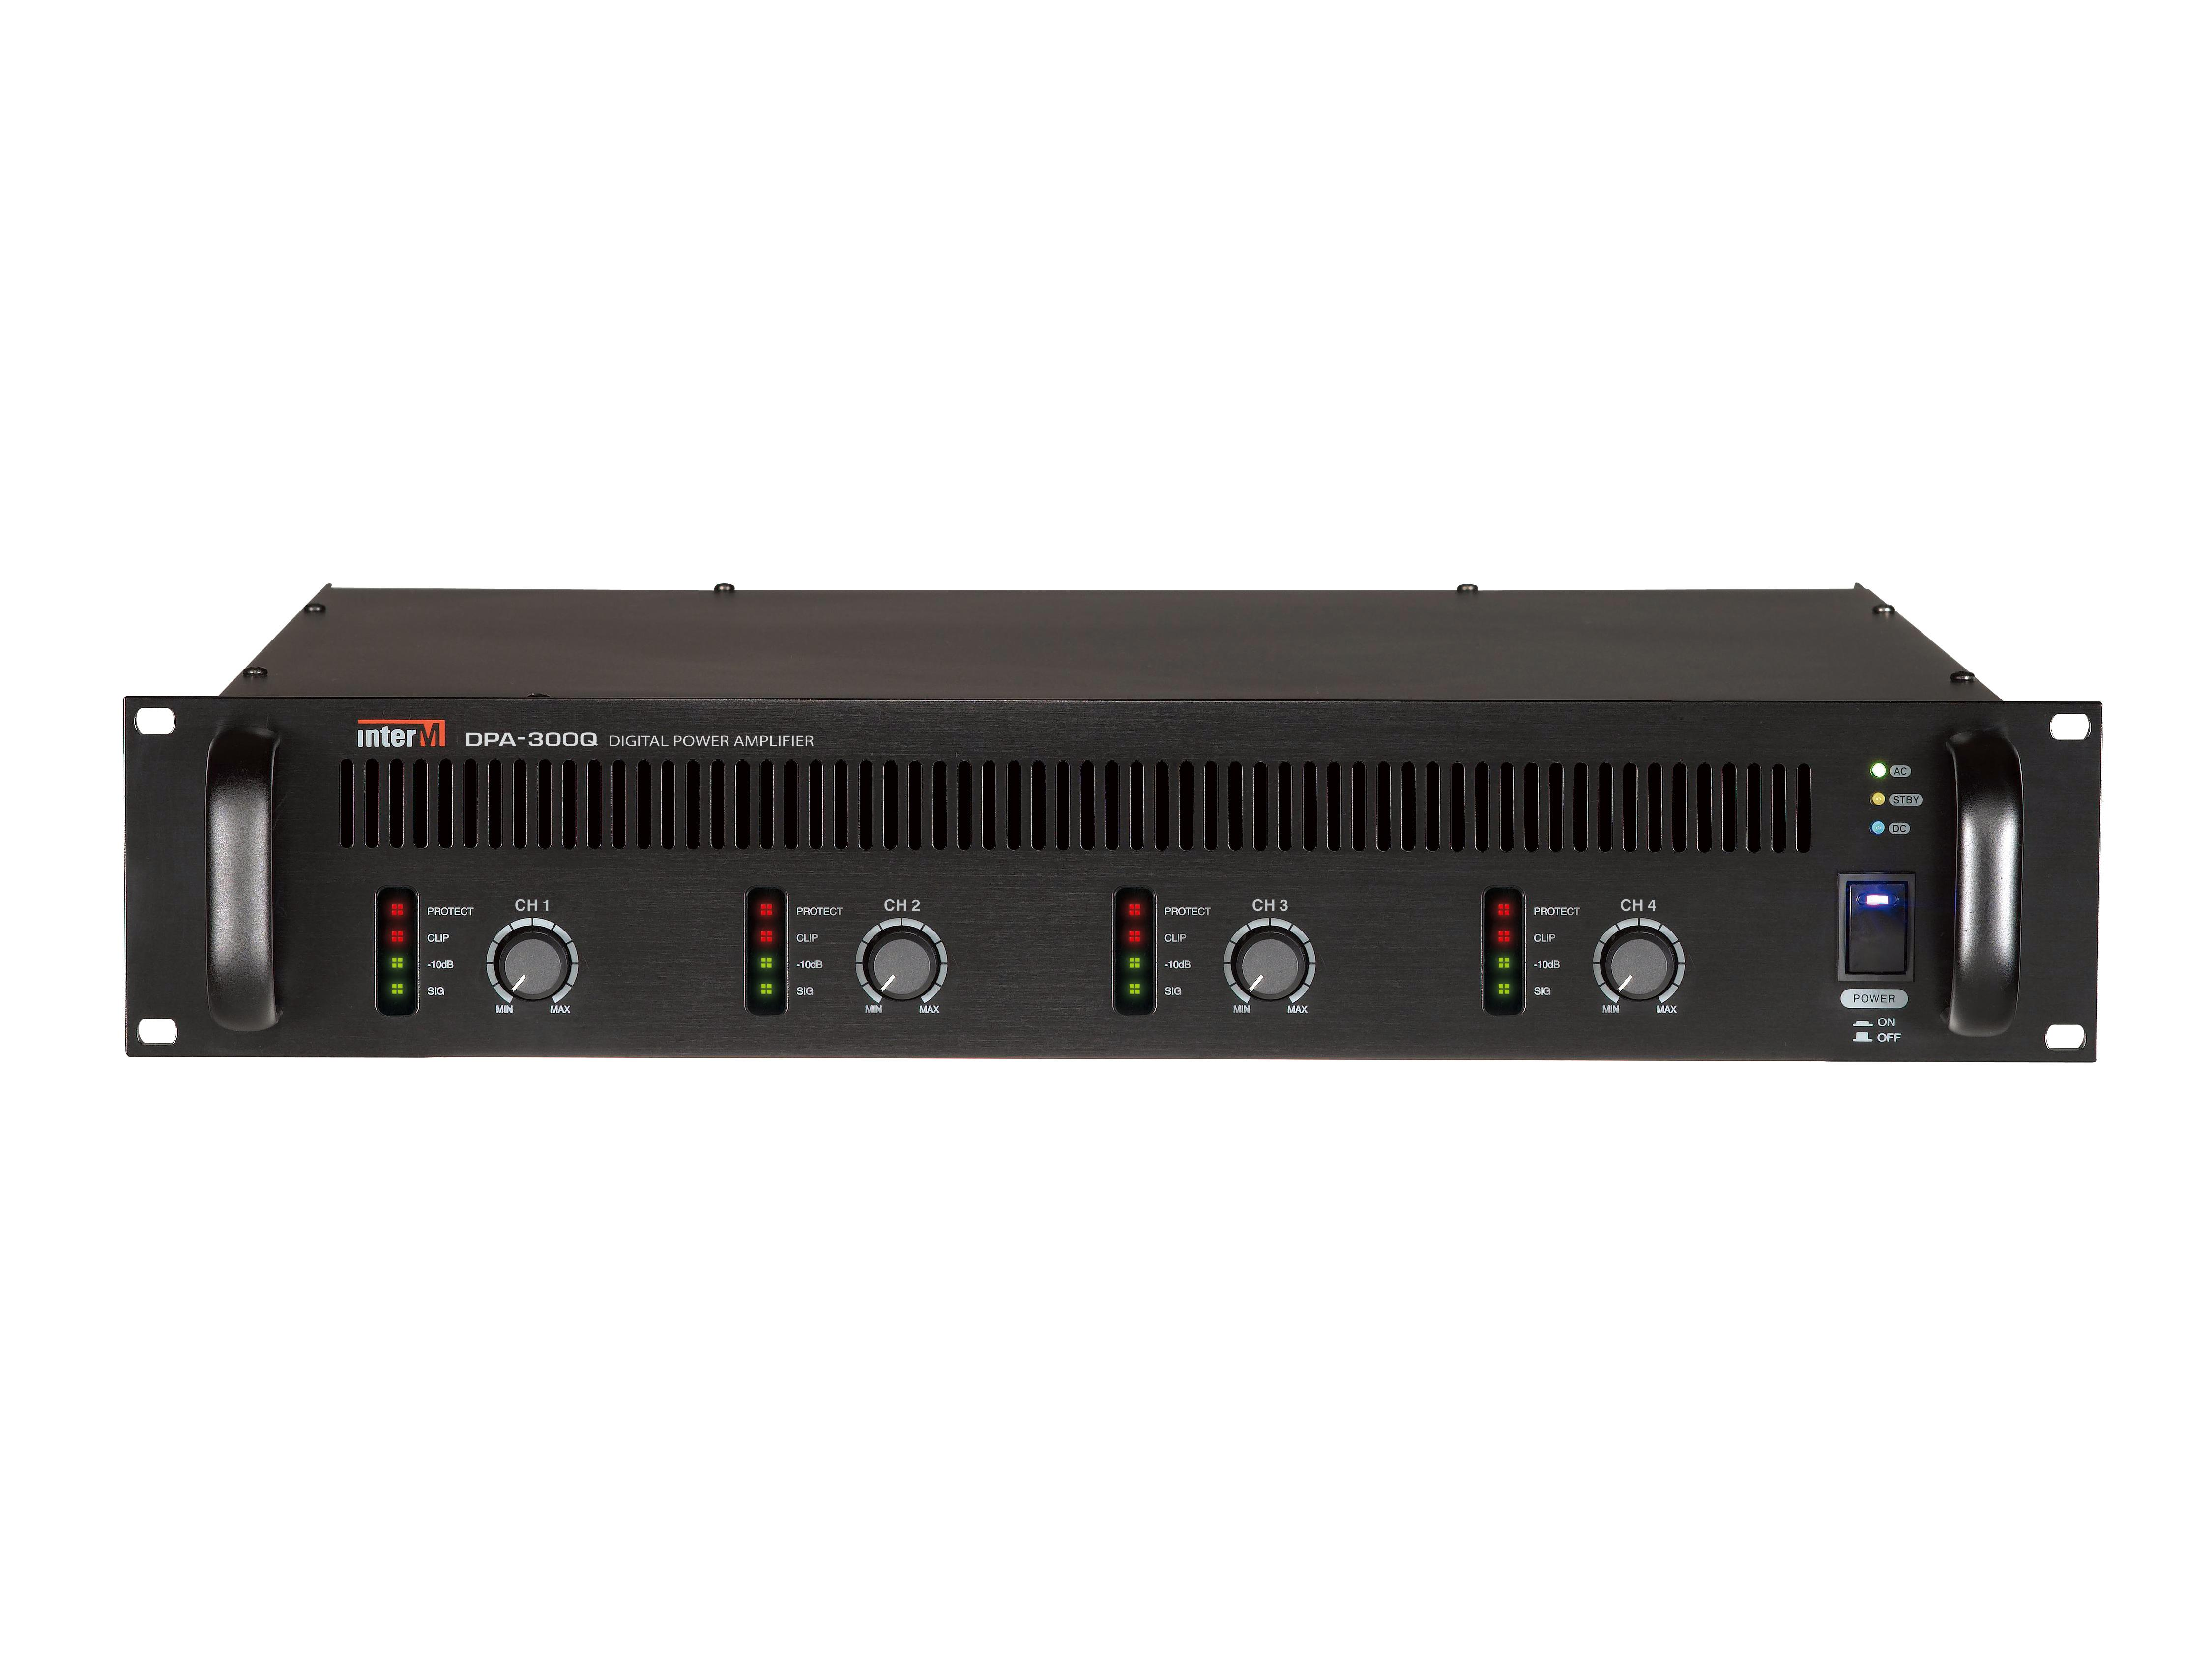 DPA-300Q 300W 4 Channel Class D Commercial Digital Power Amplifier by Inter-M